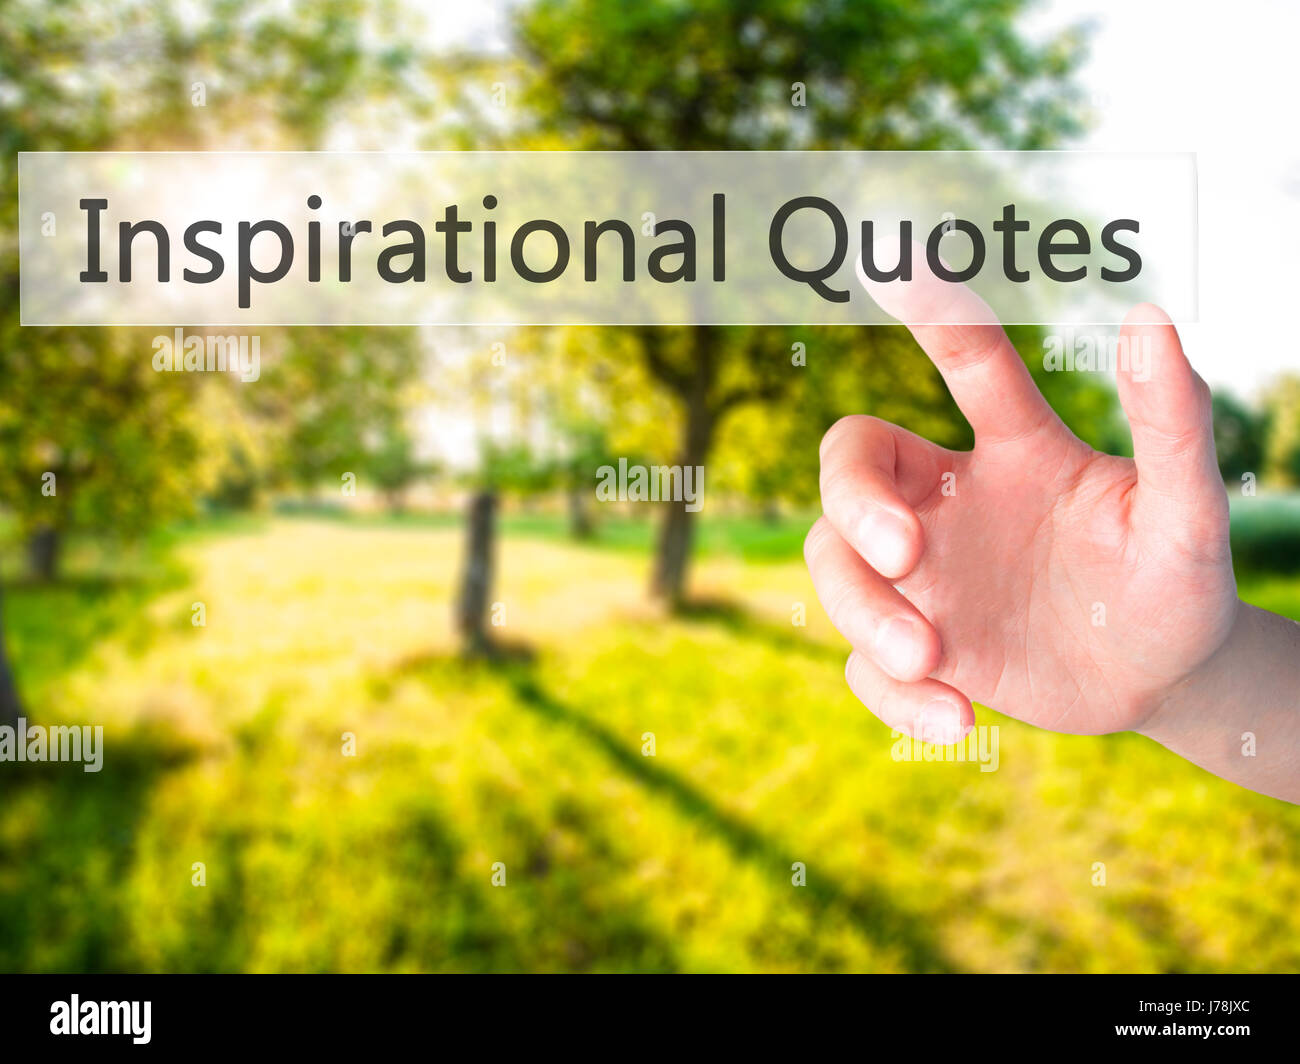 Inspirational Quotes Hand Pressing A Button On Blurred Background